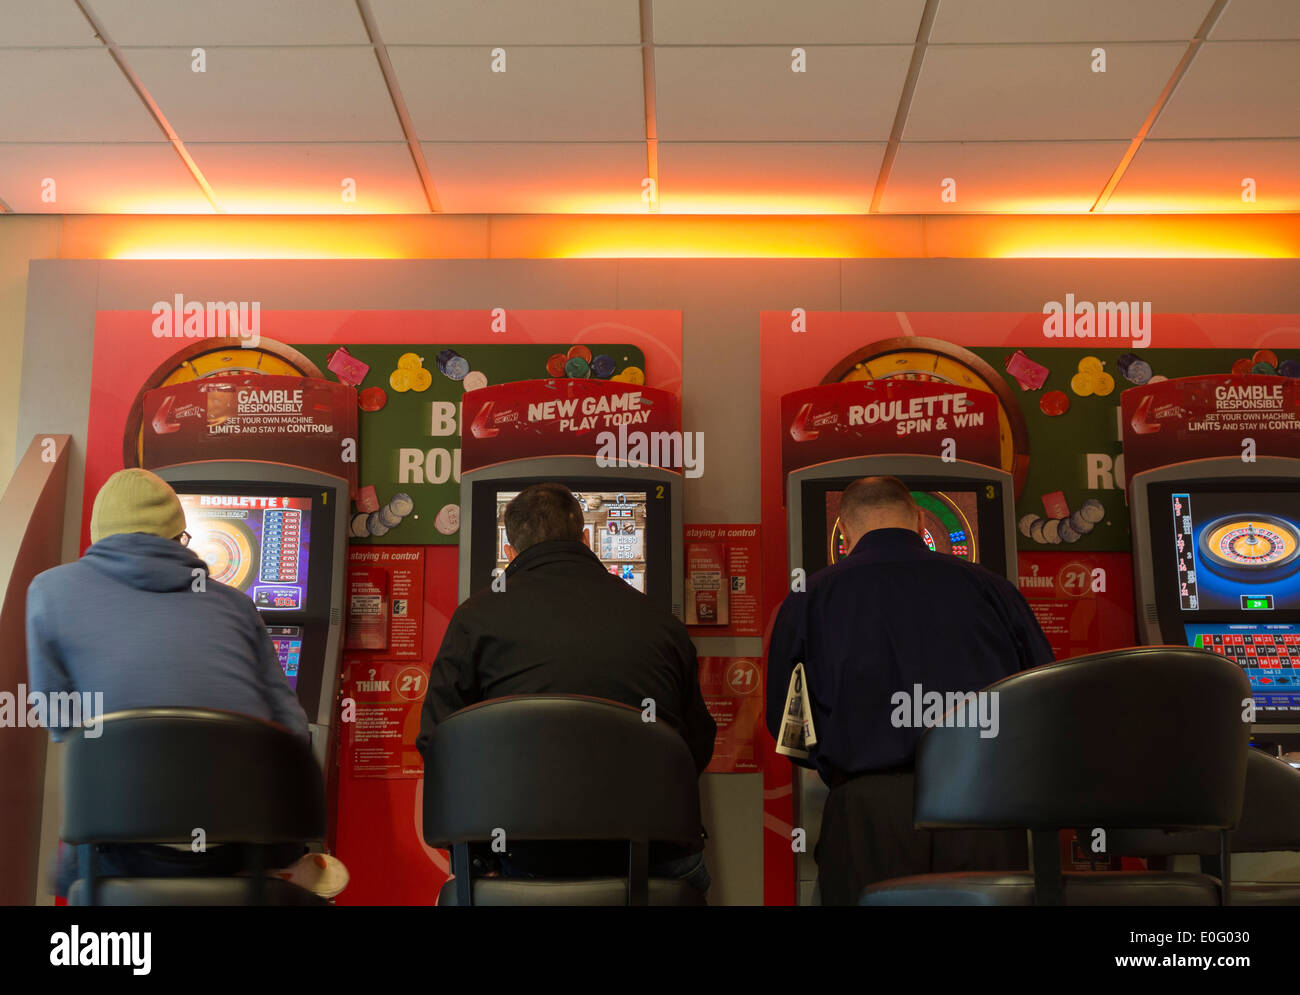 Fixed odds gaming machines in Ladbrokes Betting shop. UK - Stock Image